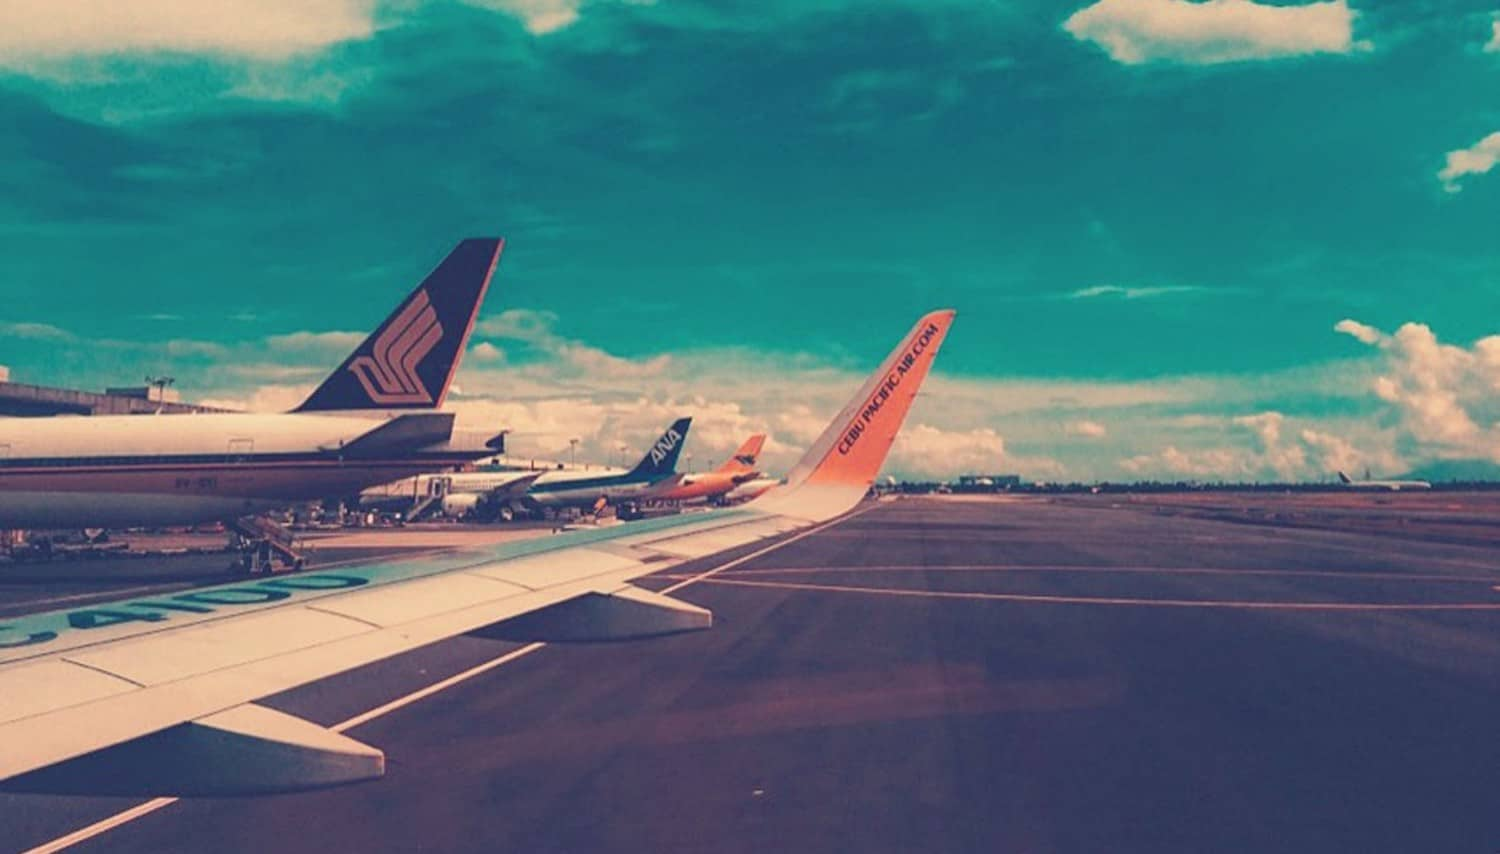 Aeroplanes on tarmac